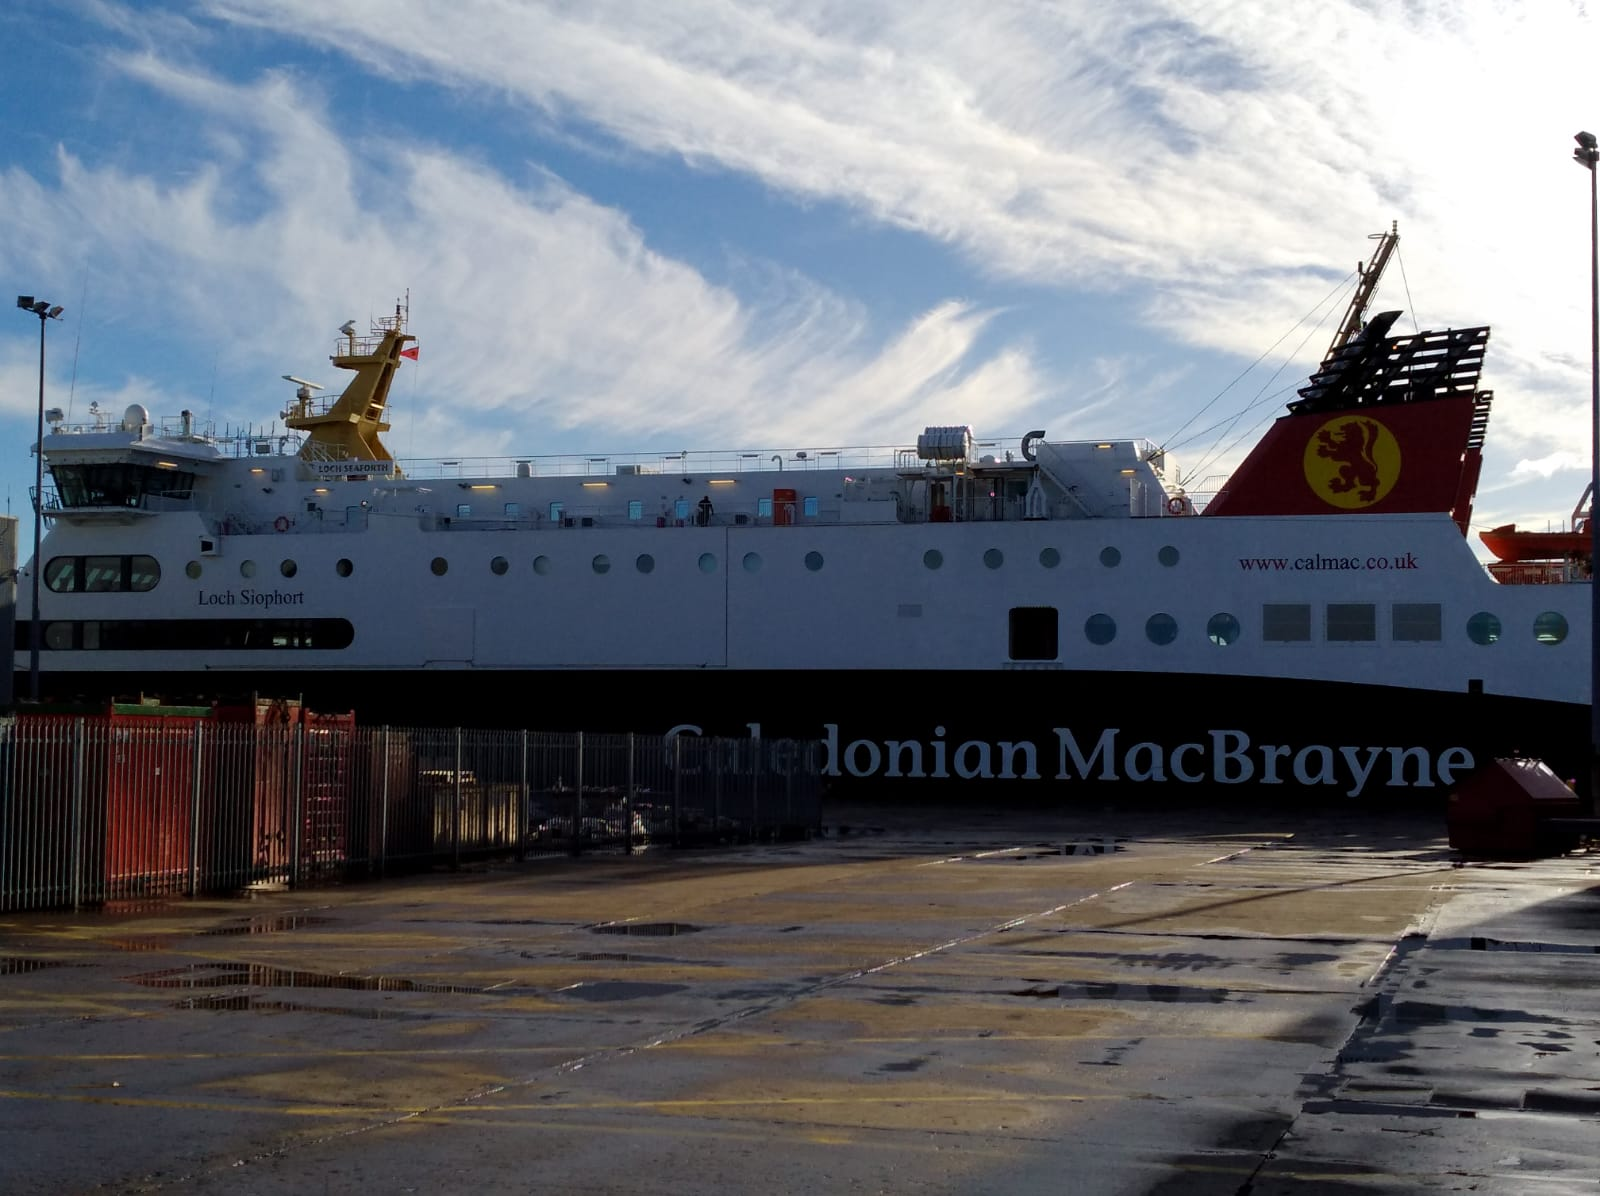 Loch Seaforth in Aberdeen Harbour for a scheduled check over